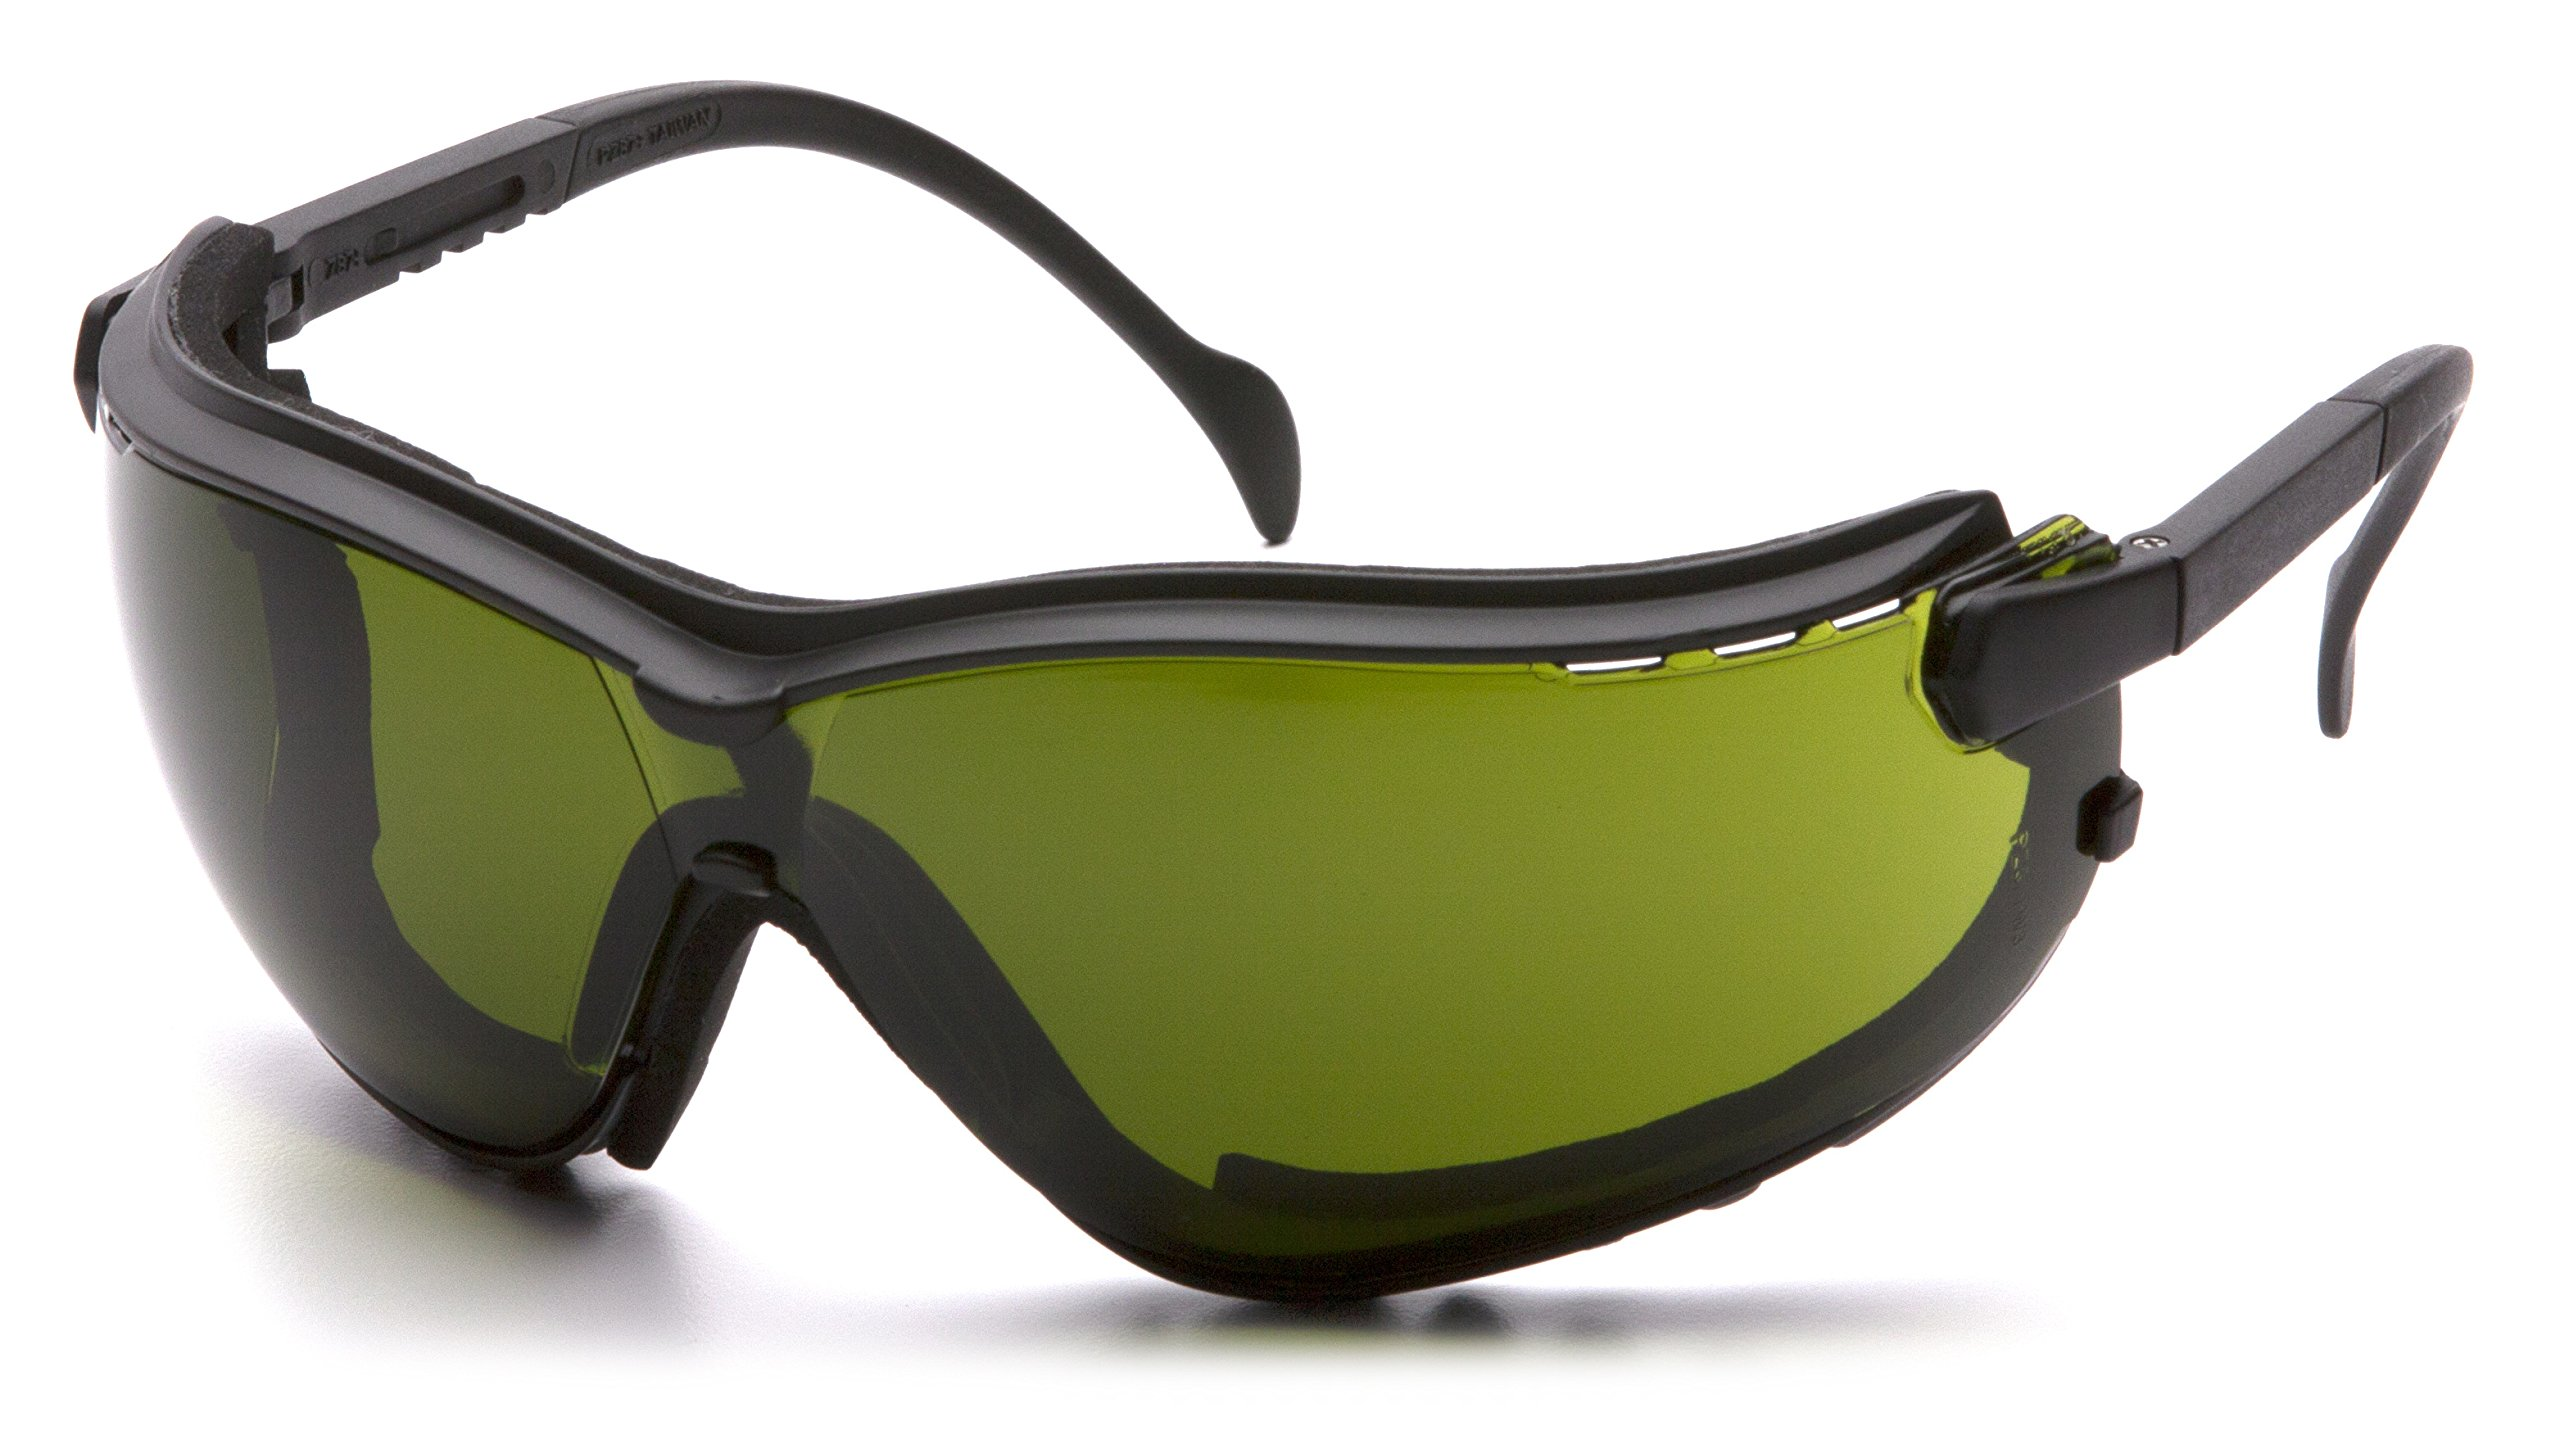 Pyramex V2G Safety Glasses, Black Frame/3.0 IR Filter Lens